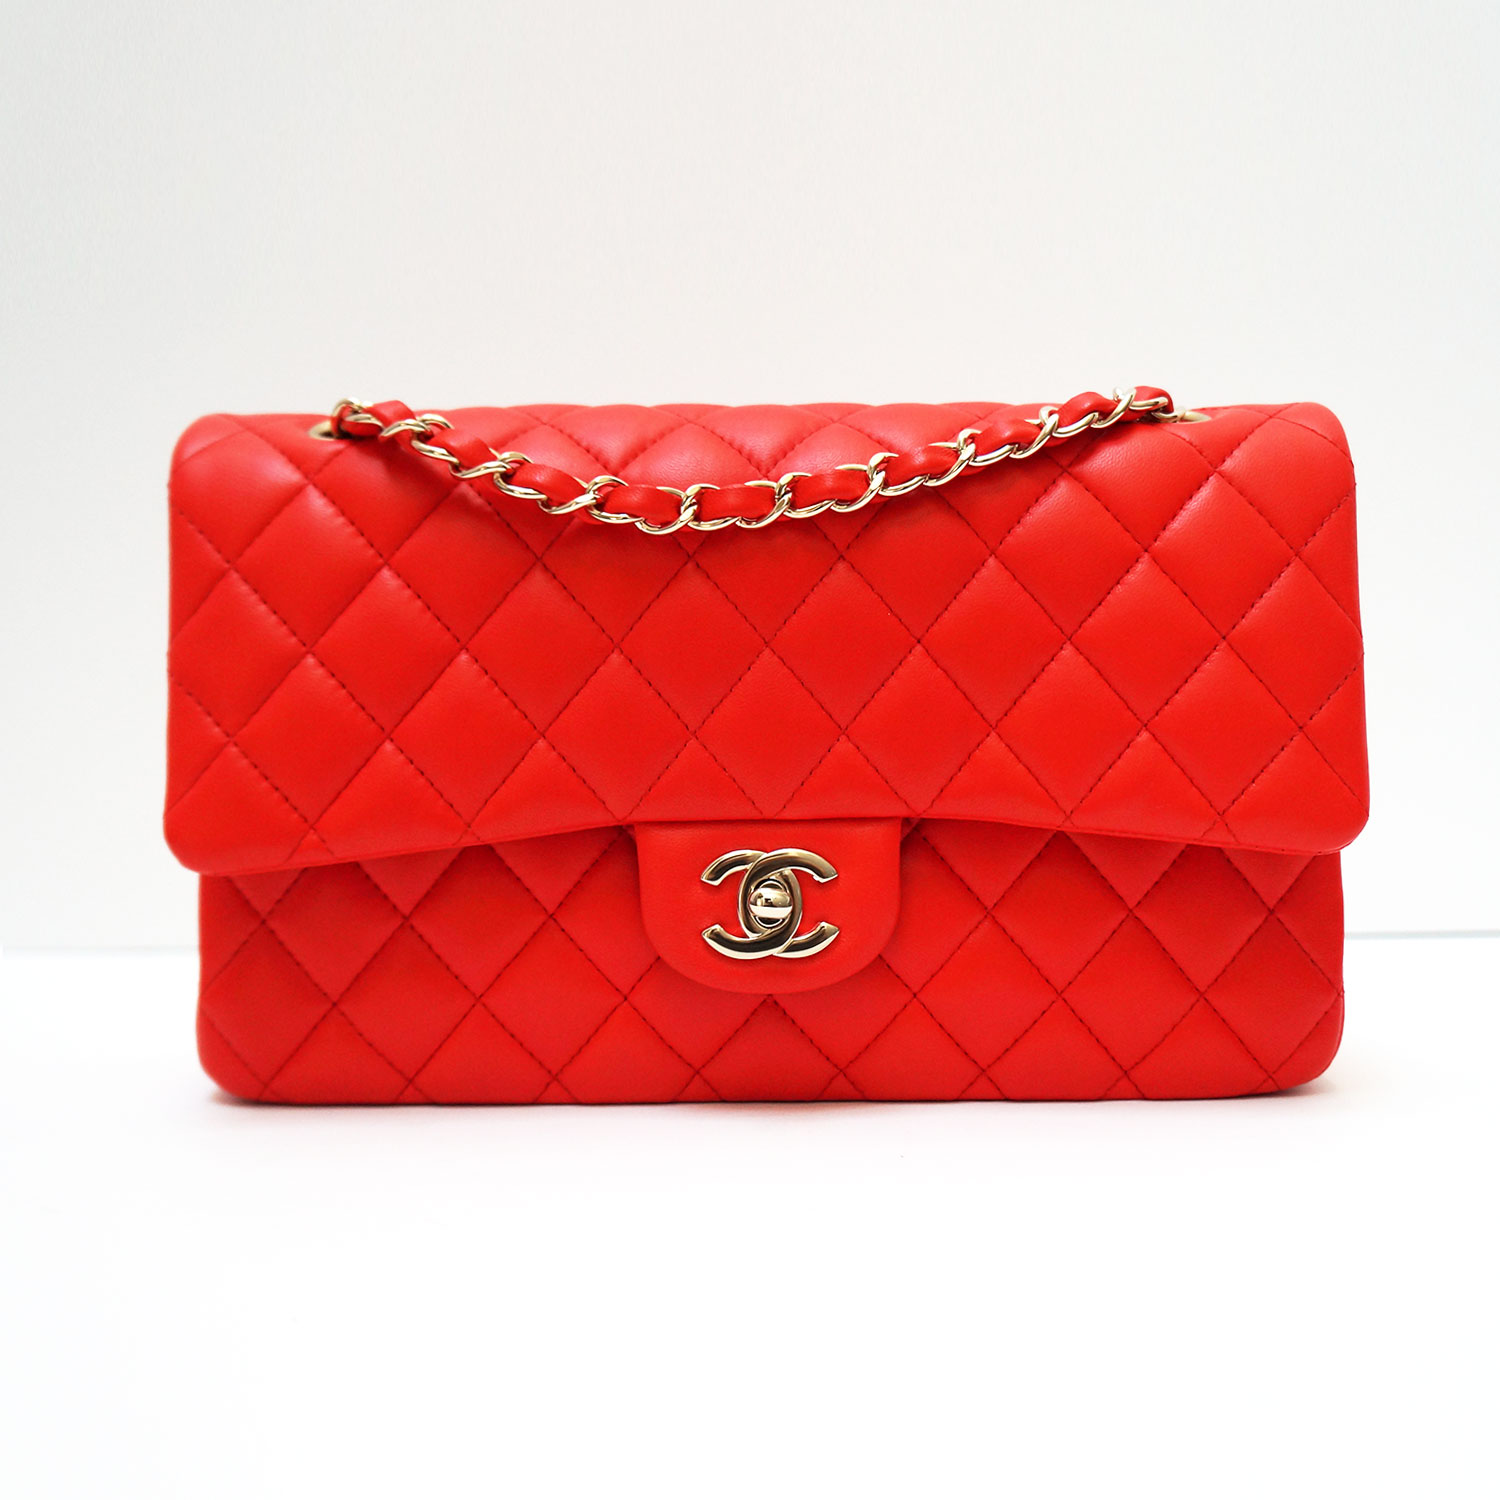 76f8dc9cf217 Chanel Red Lambskin Leather Classic Medium Double Flap Bag | | My ...